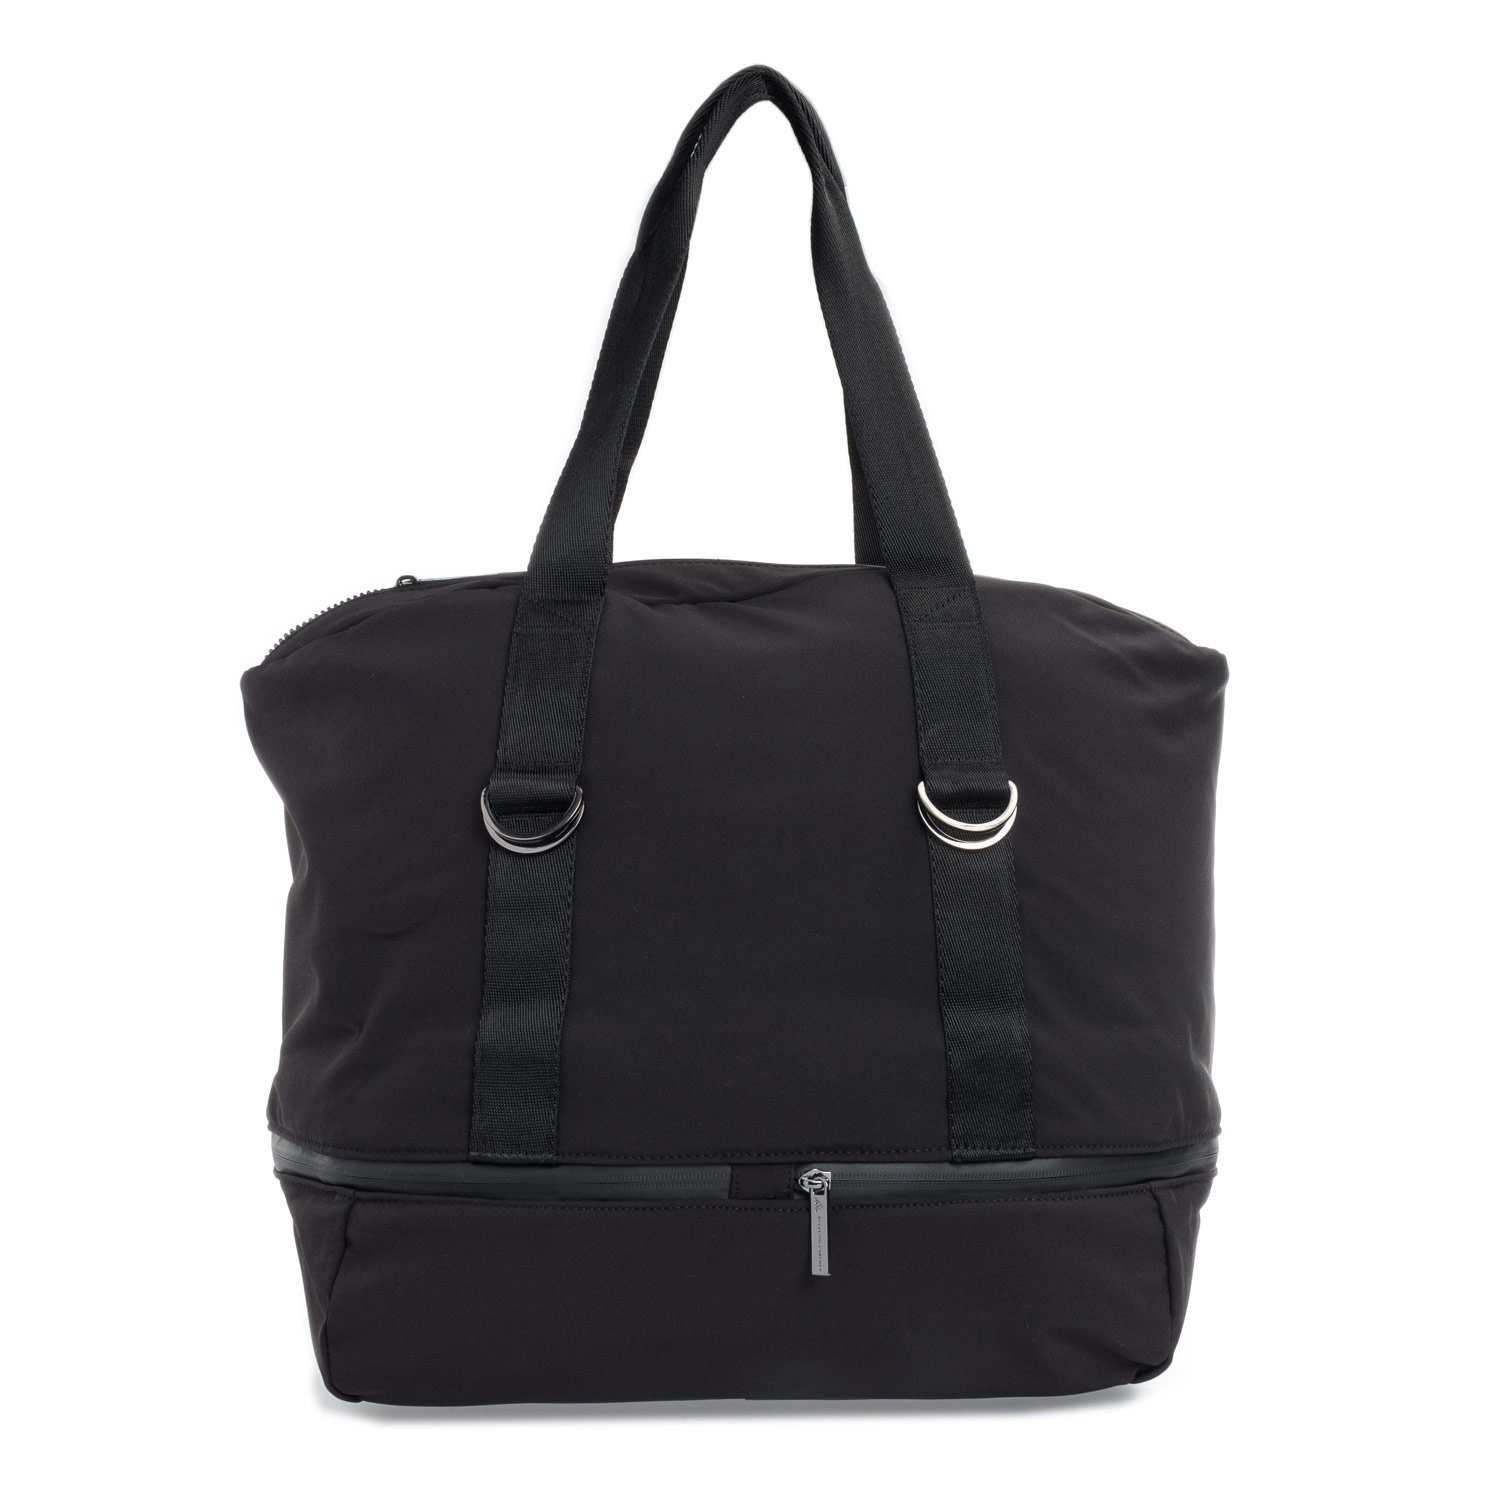 adidas Women s Iconic Bag L Bag - Black Negro Ngtste Icegry  adidas by Stella  McCartney  Amazon.co.uk  Sports   Outdoors 4ebff320b789b